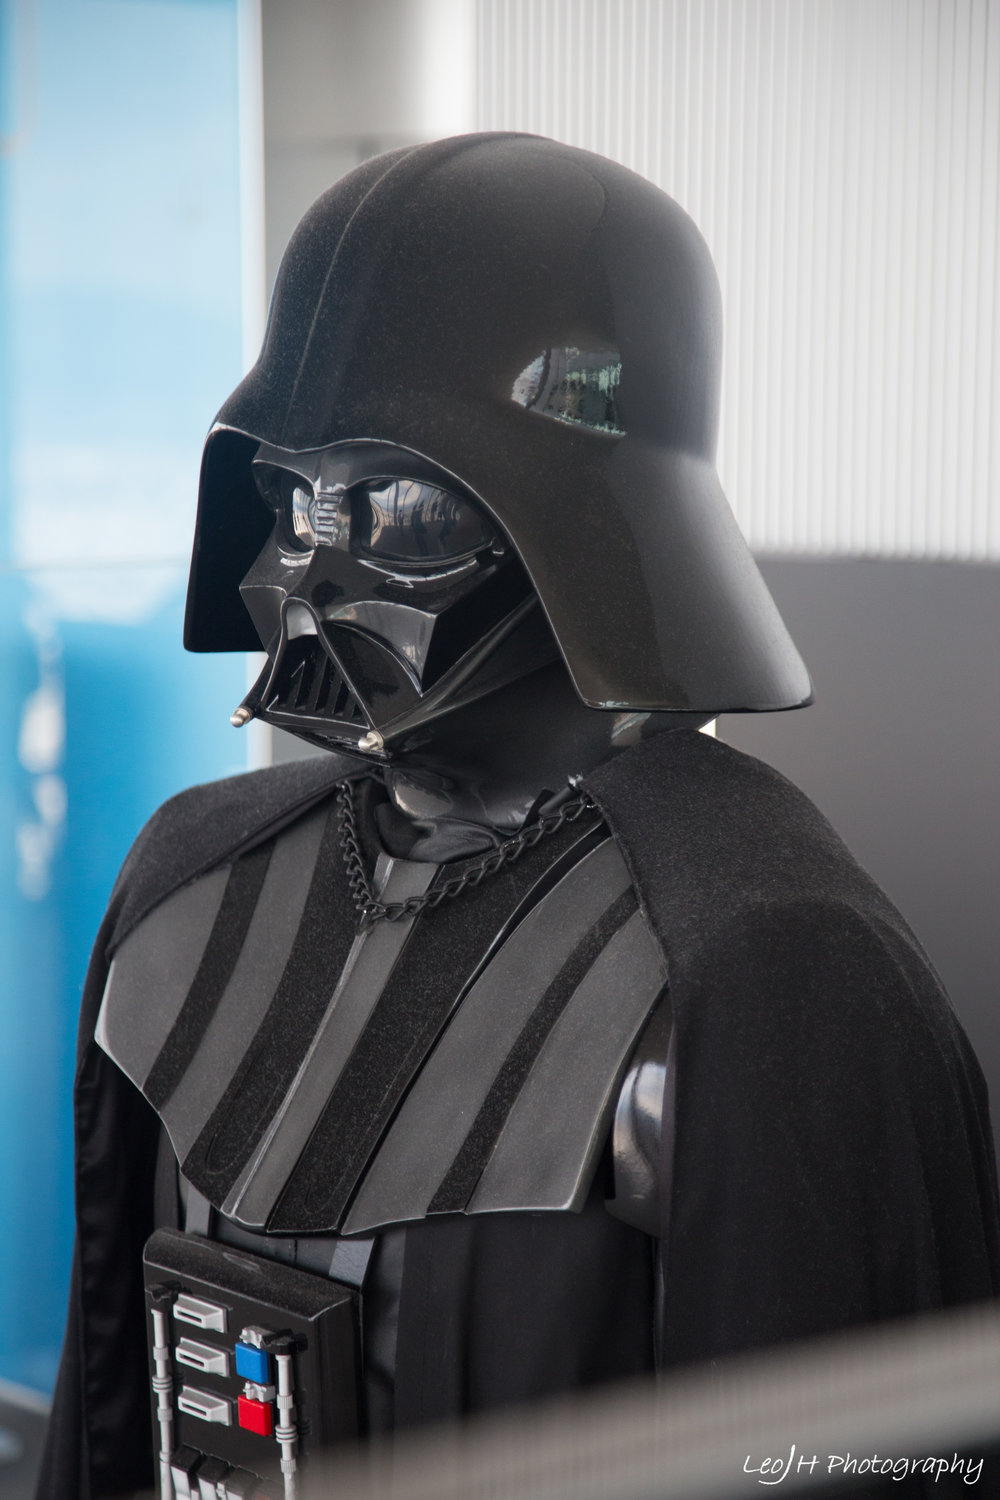 A wild Darth Vader appeared